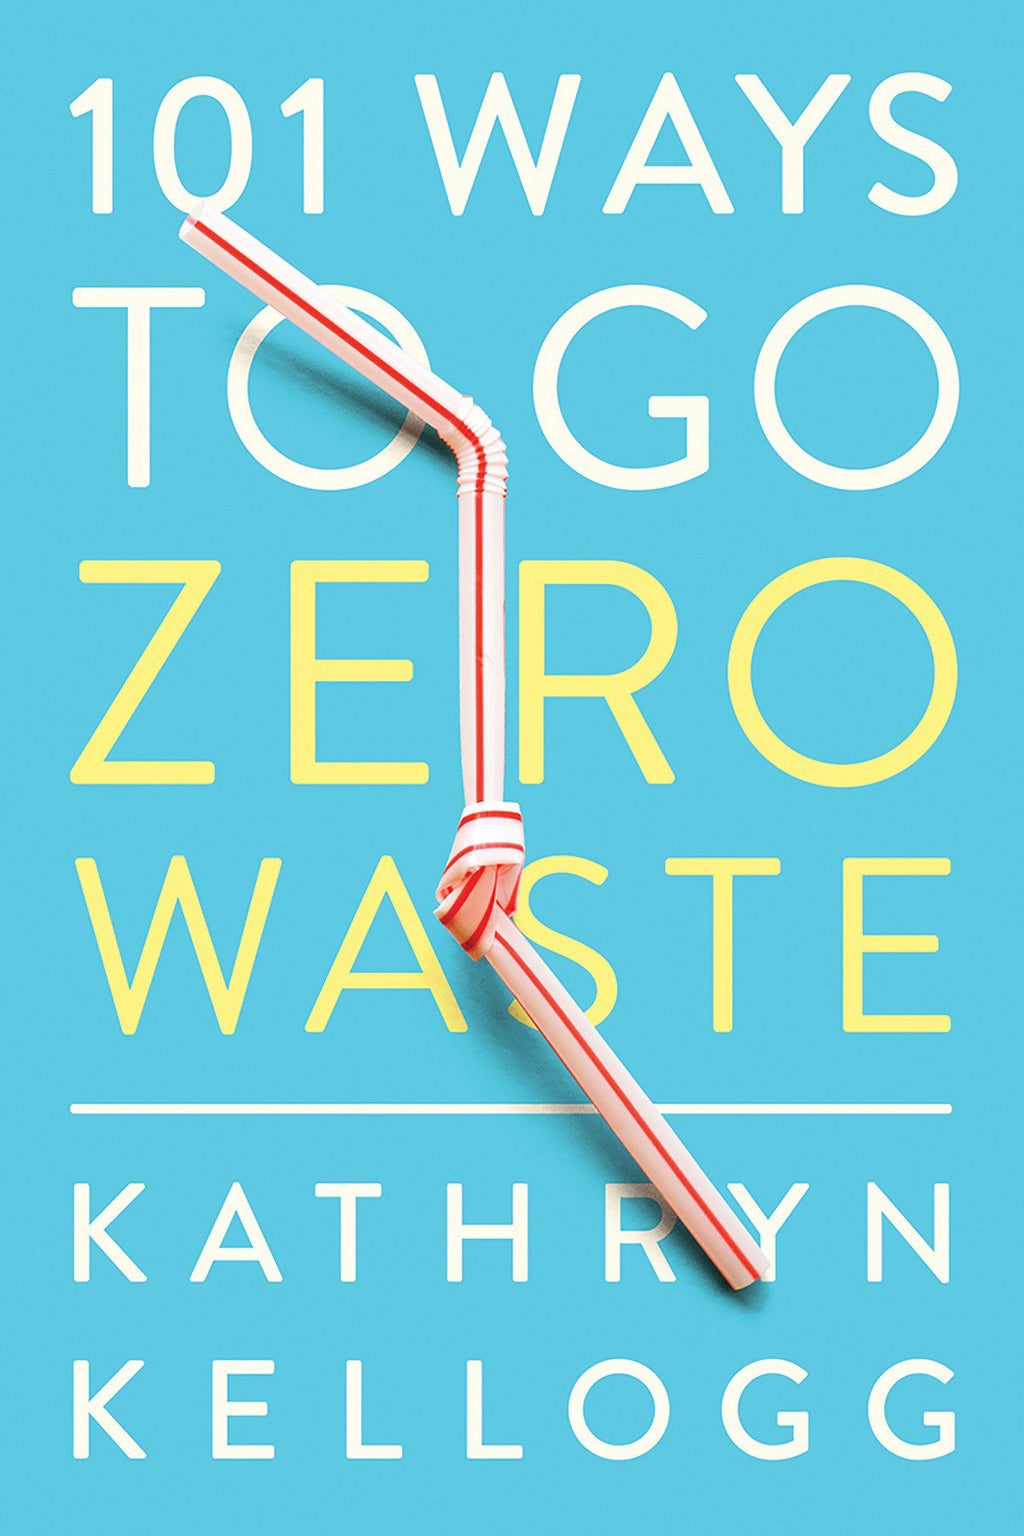 101 Ways to Go Zero Waste | Paperback | Kathryn Kellogg